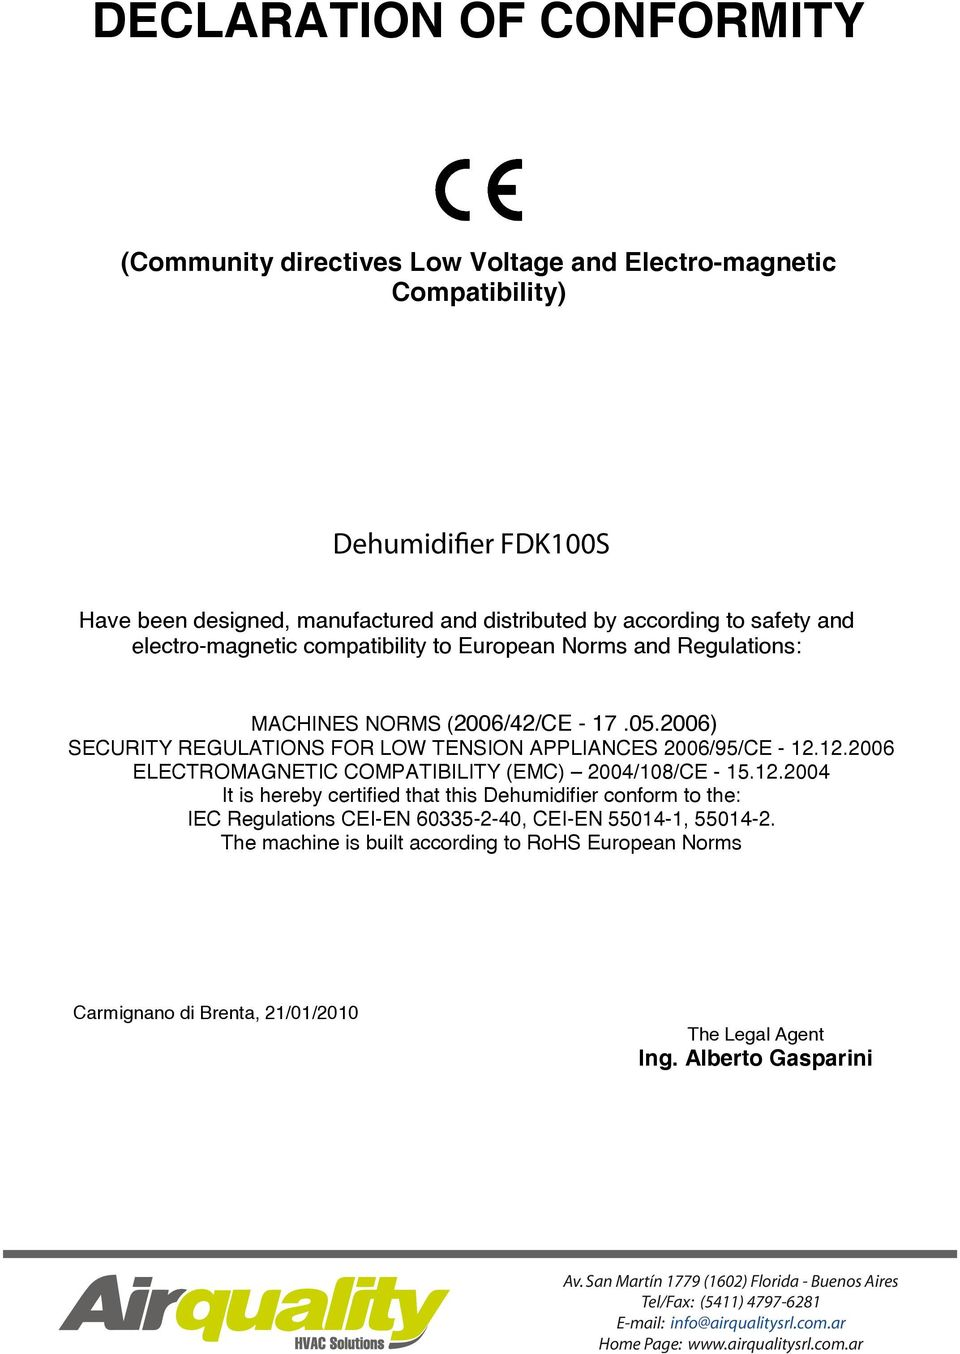 2006) SECURITY REGULATIONS FOR LOW TENSION APPLIANCES 2006/95/CE - 12.